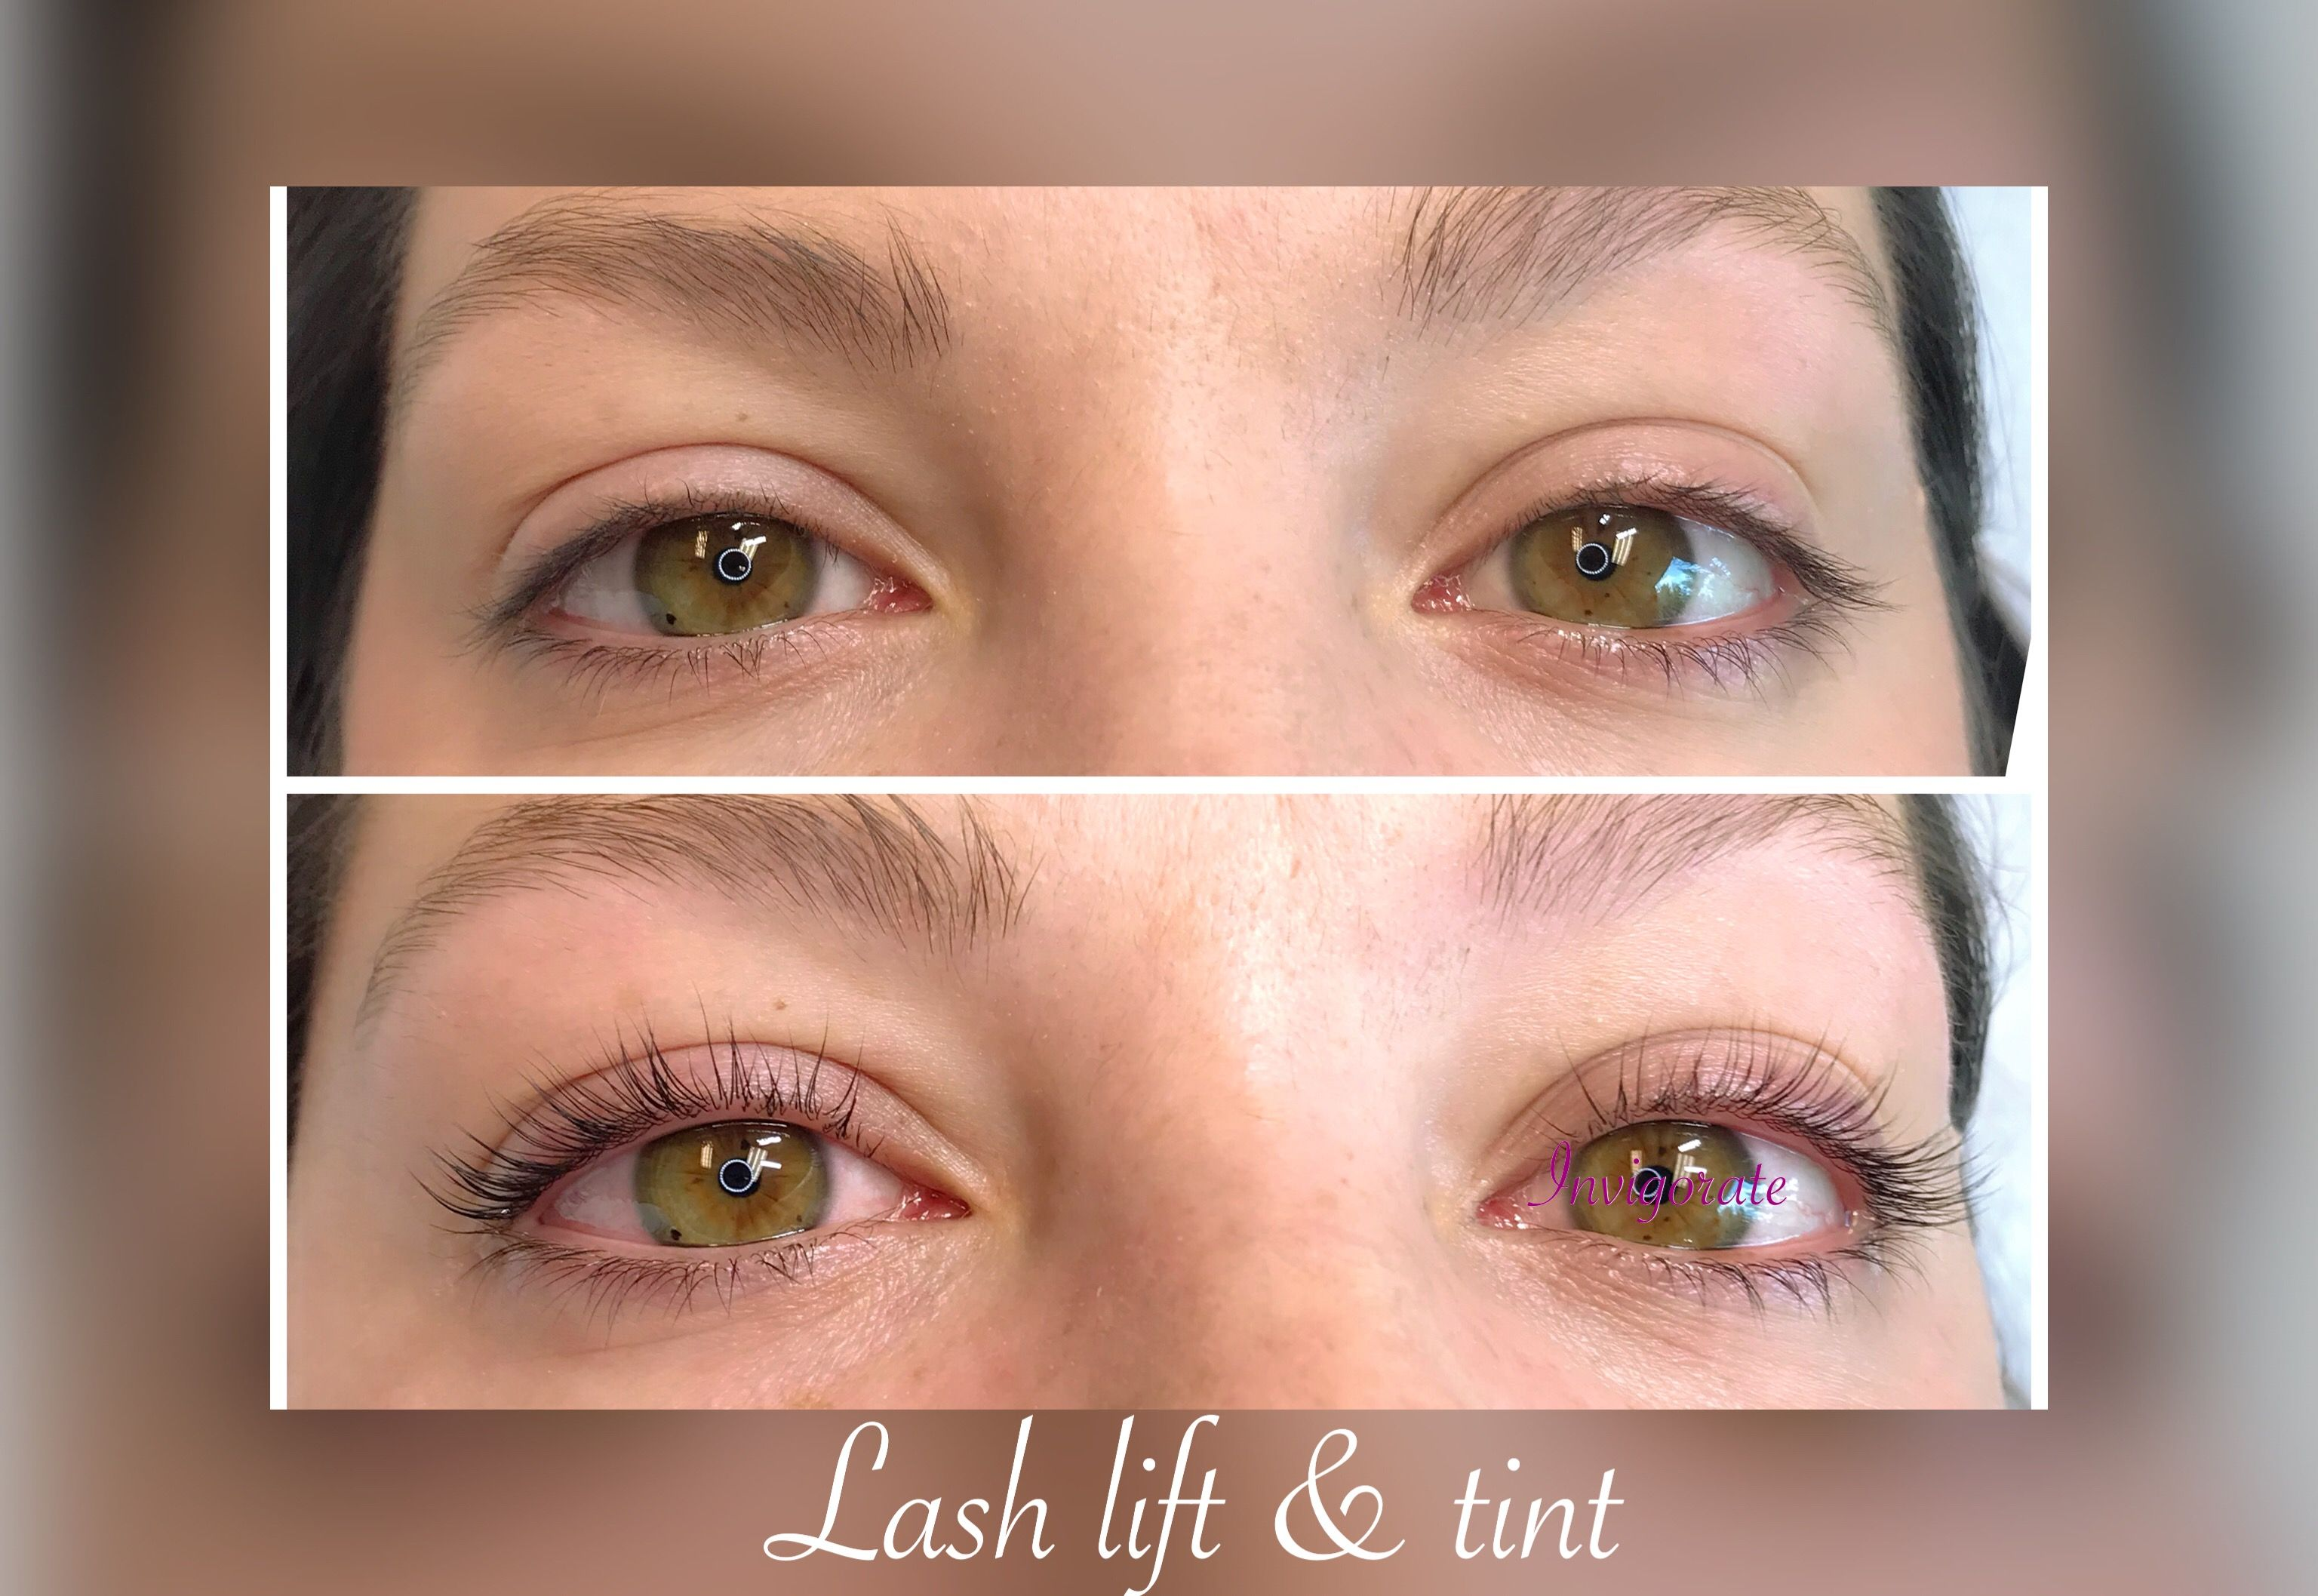 Permanent Makeup Lash lift, Permanent makeup, Lashes